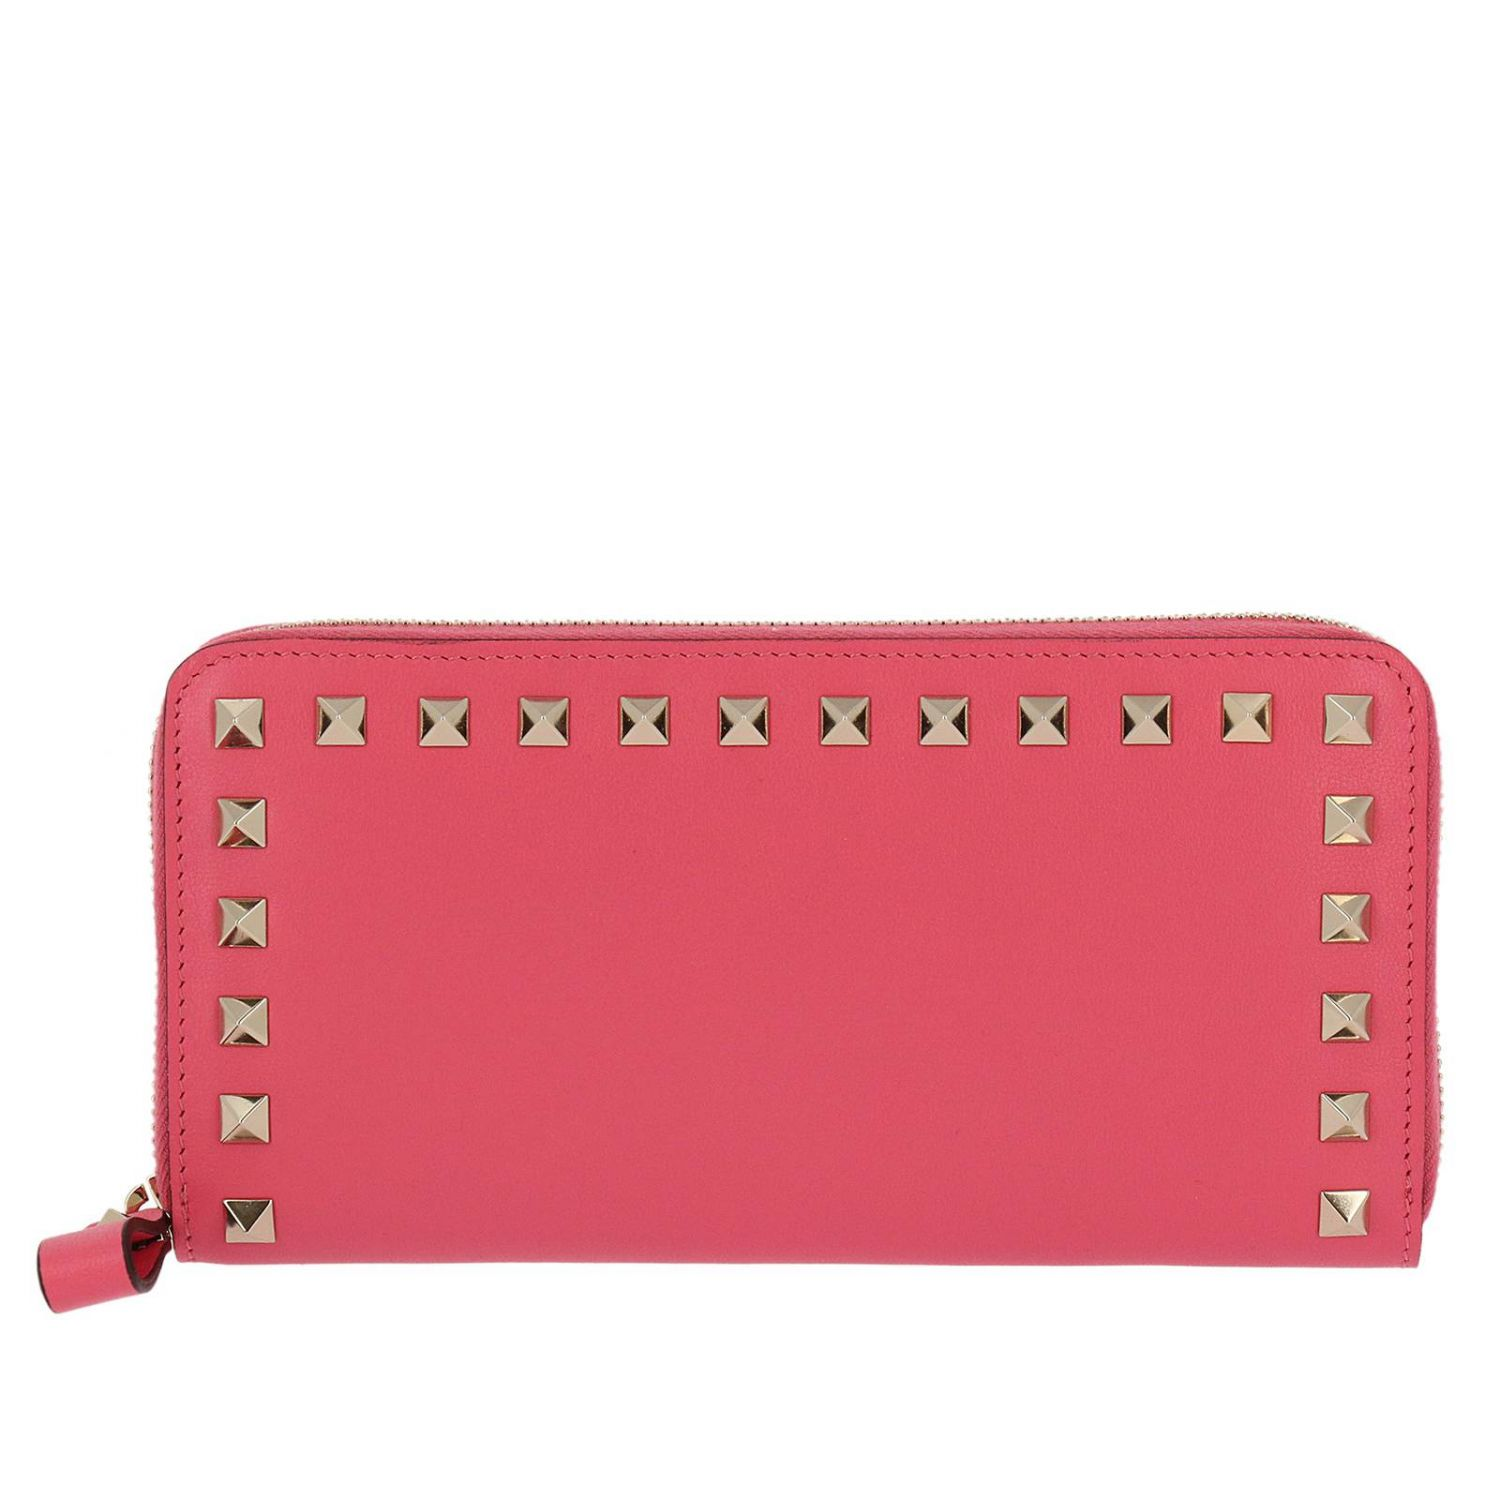 Wallet Valentino Rockstud Spike Continental Wallet With Zip Around And Studs Edges 8286827